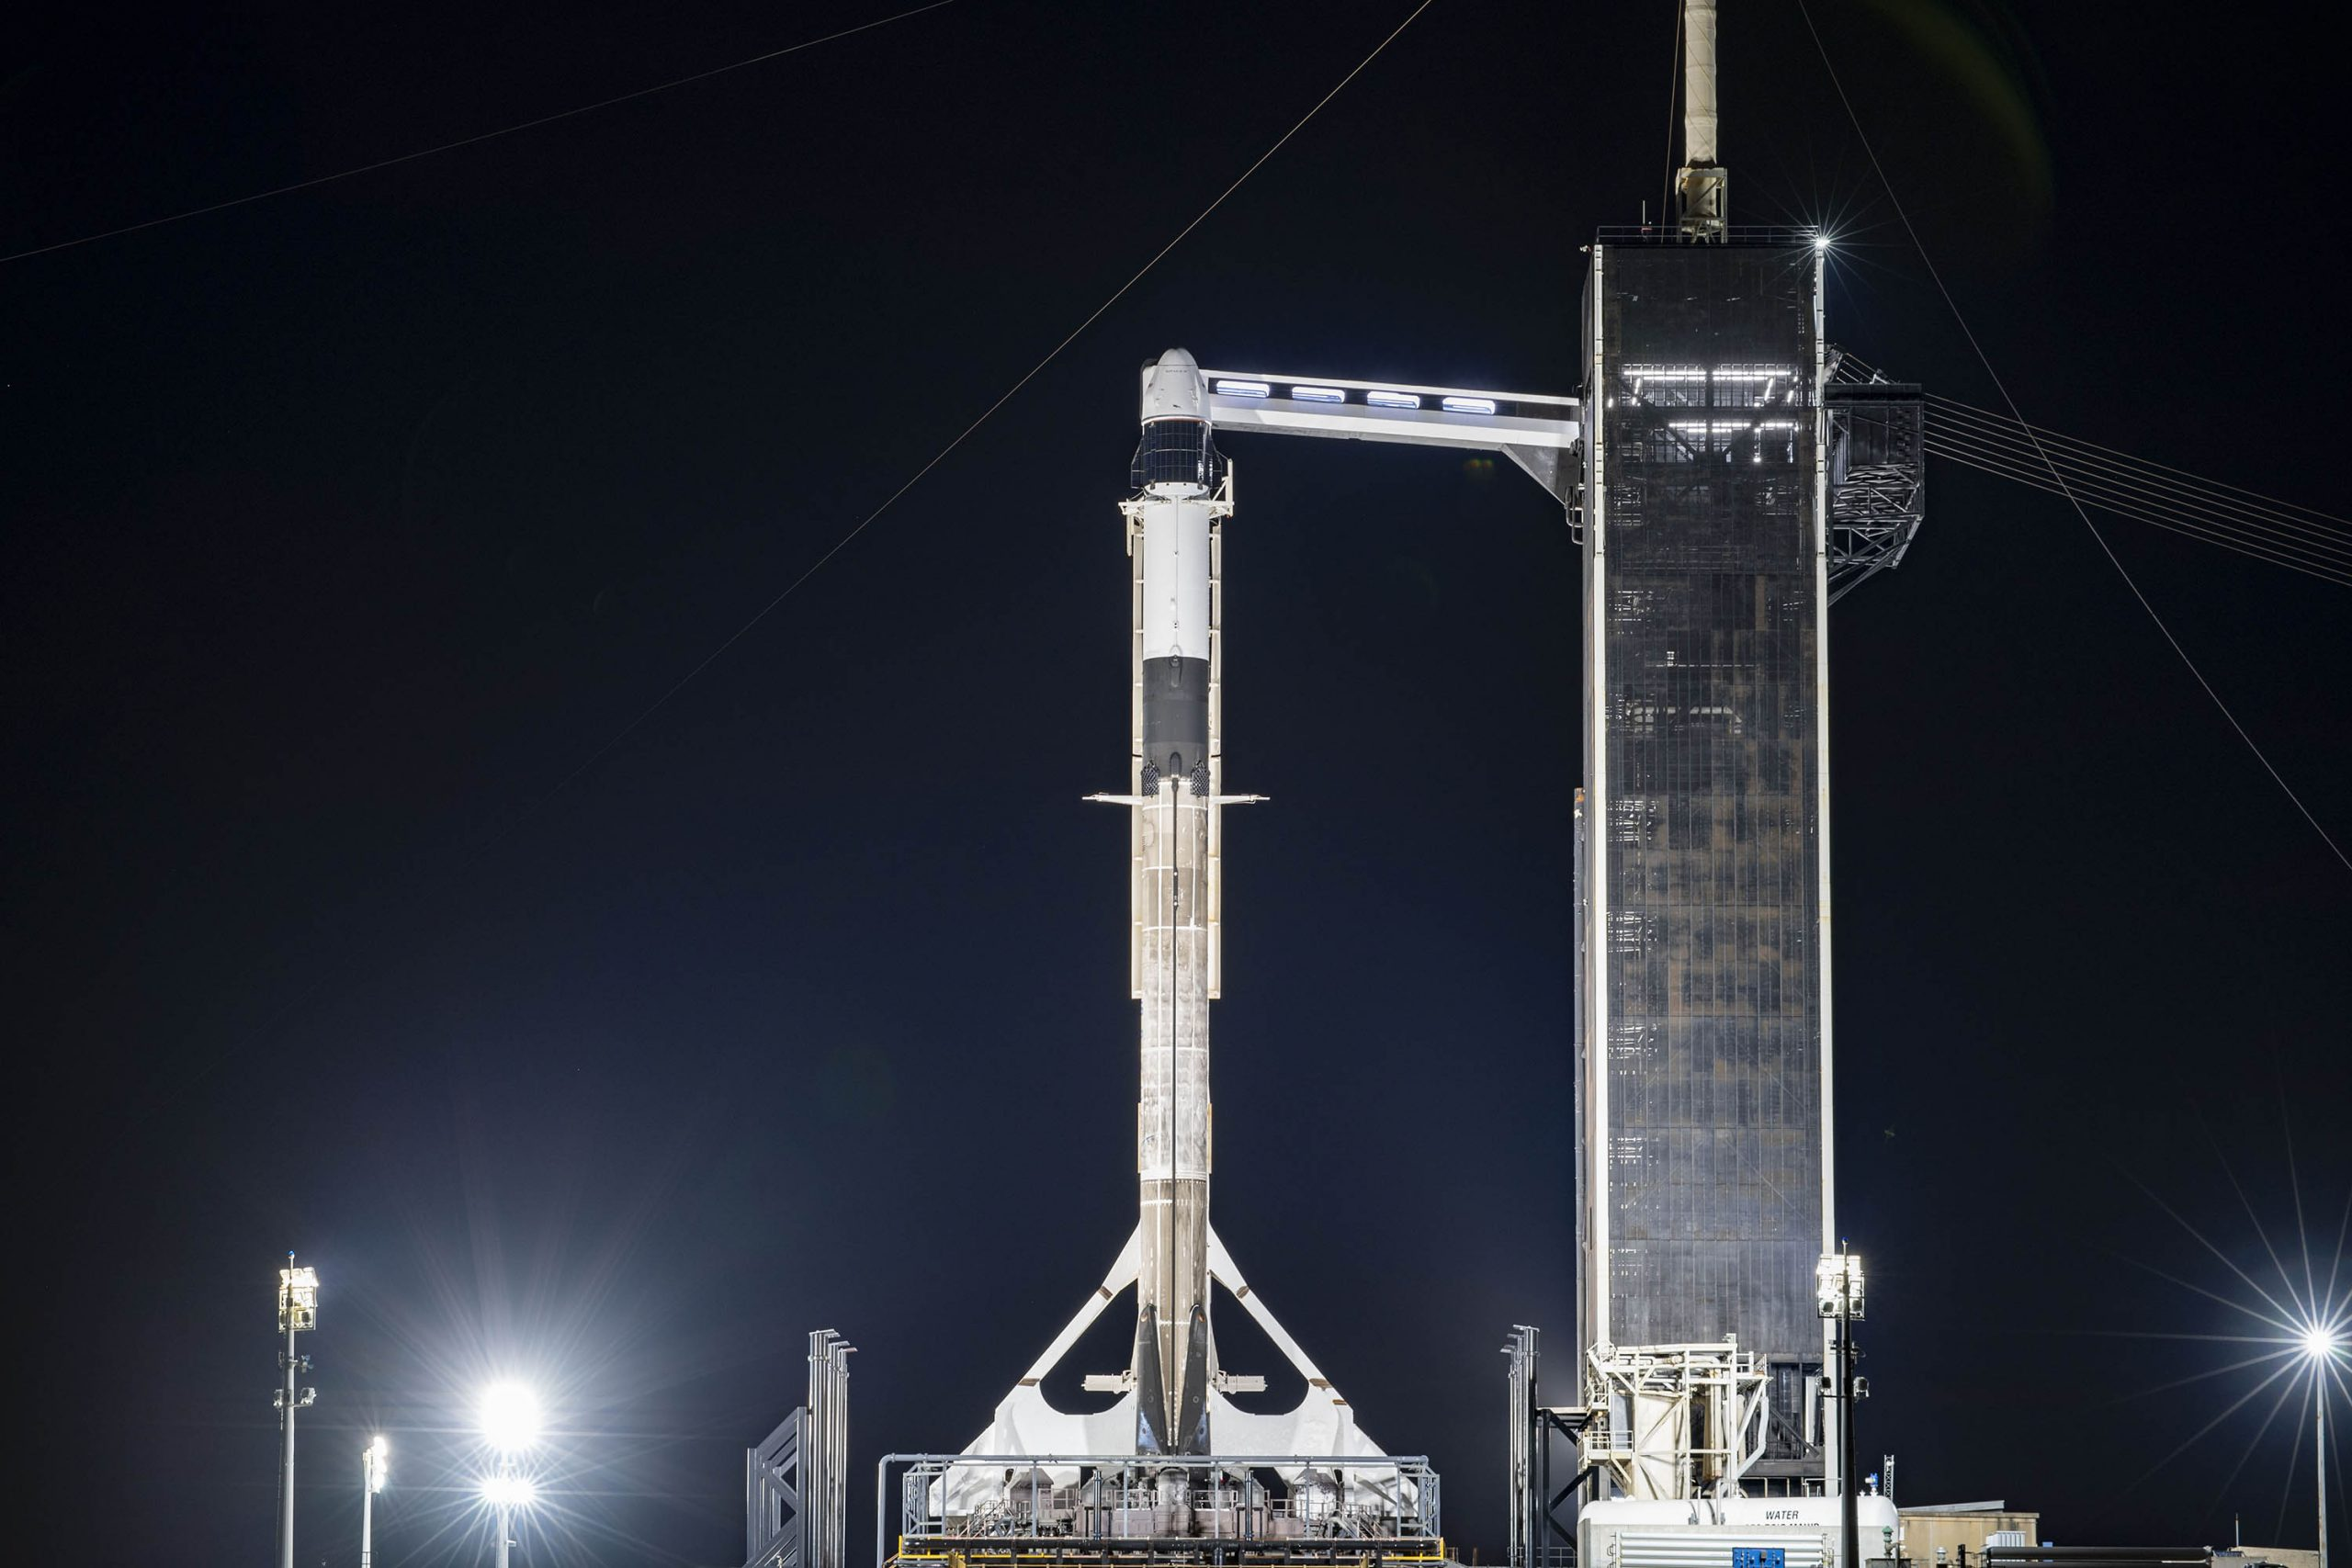 A SpaceX Falcon 9 rocket and Cargo Dragon spacecraft stand ready for liftoff for the company's CRS-21 launch.